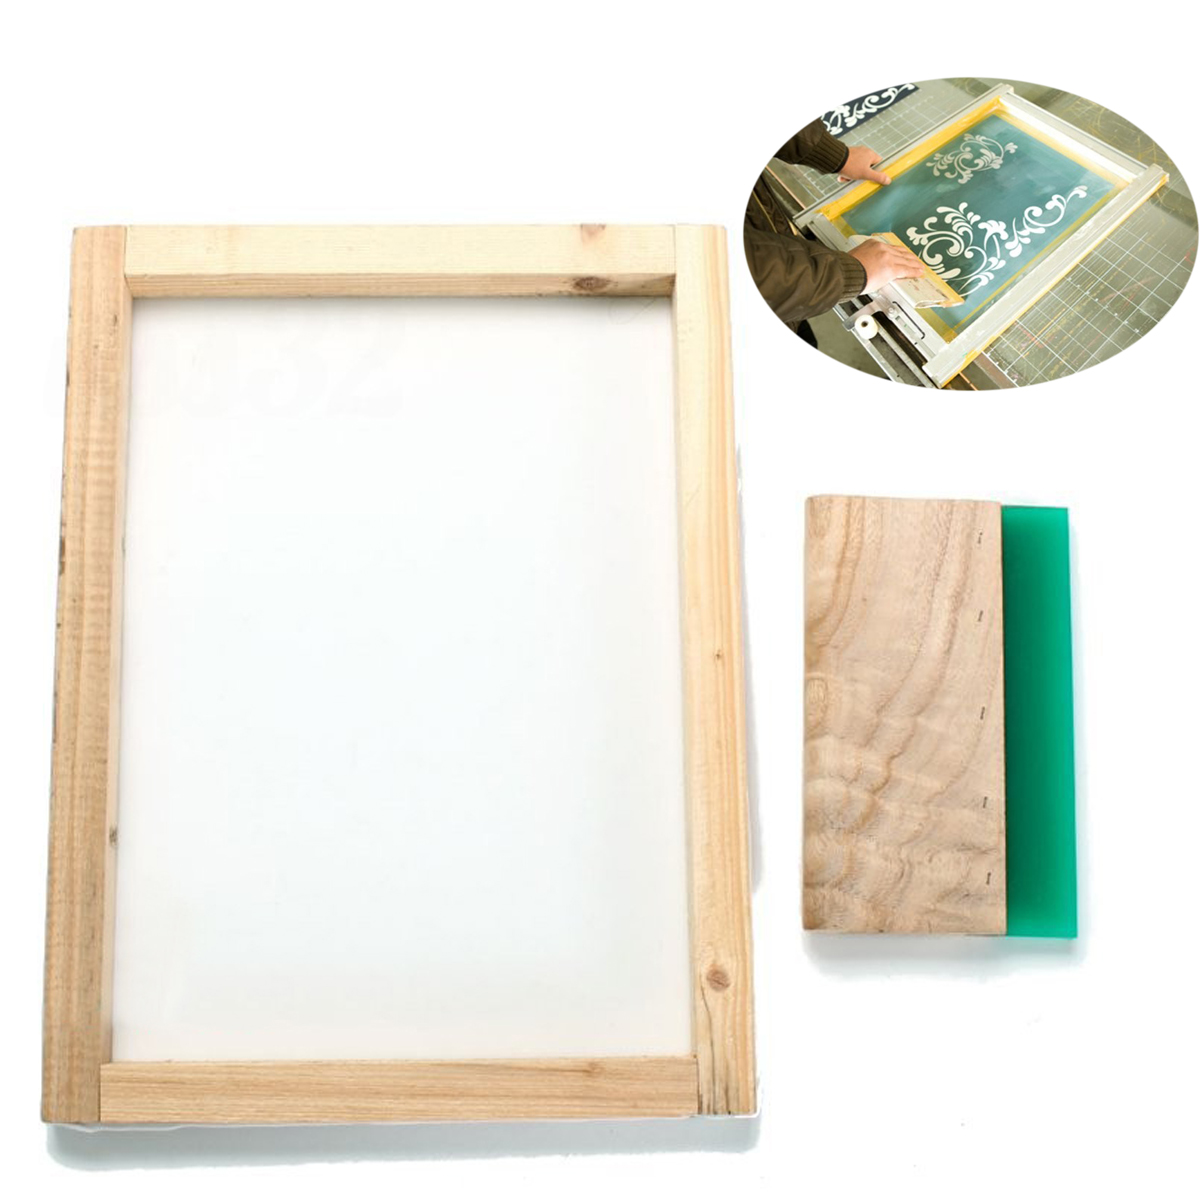 300*400mm Silk Screen Printing Frame with 43T Mesh & 8 Wooden Squeegee DIY300*400mm Silk Screen Printing Frame with 43T Mesh & 8 Wooden Squeegee DIY